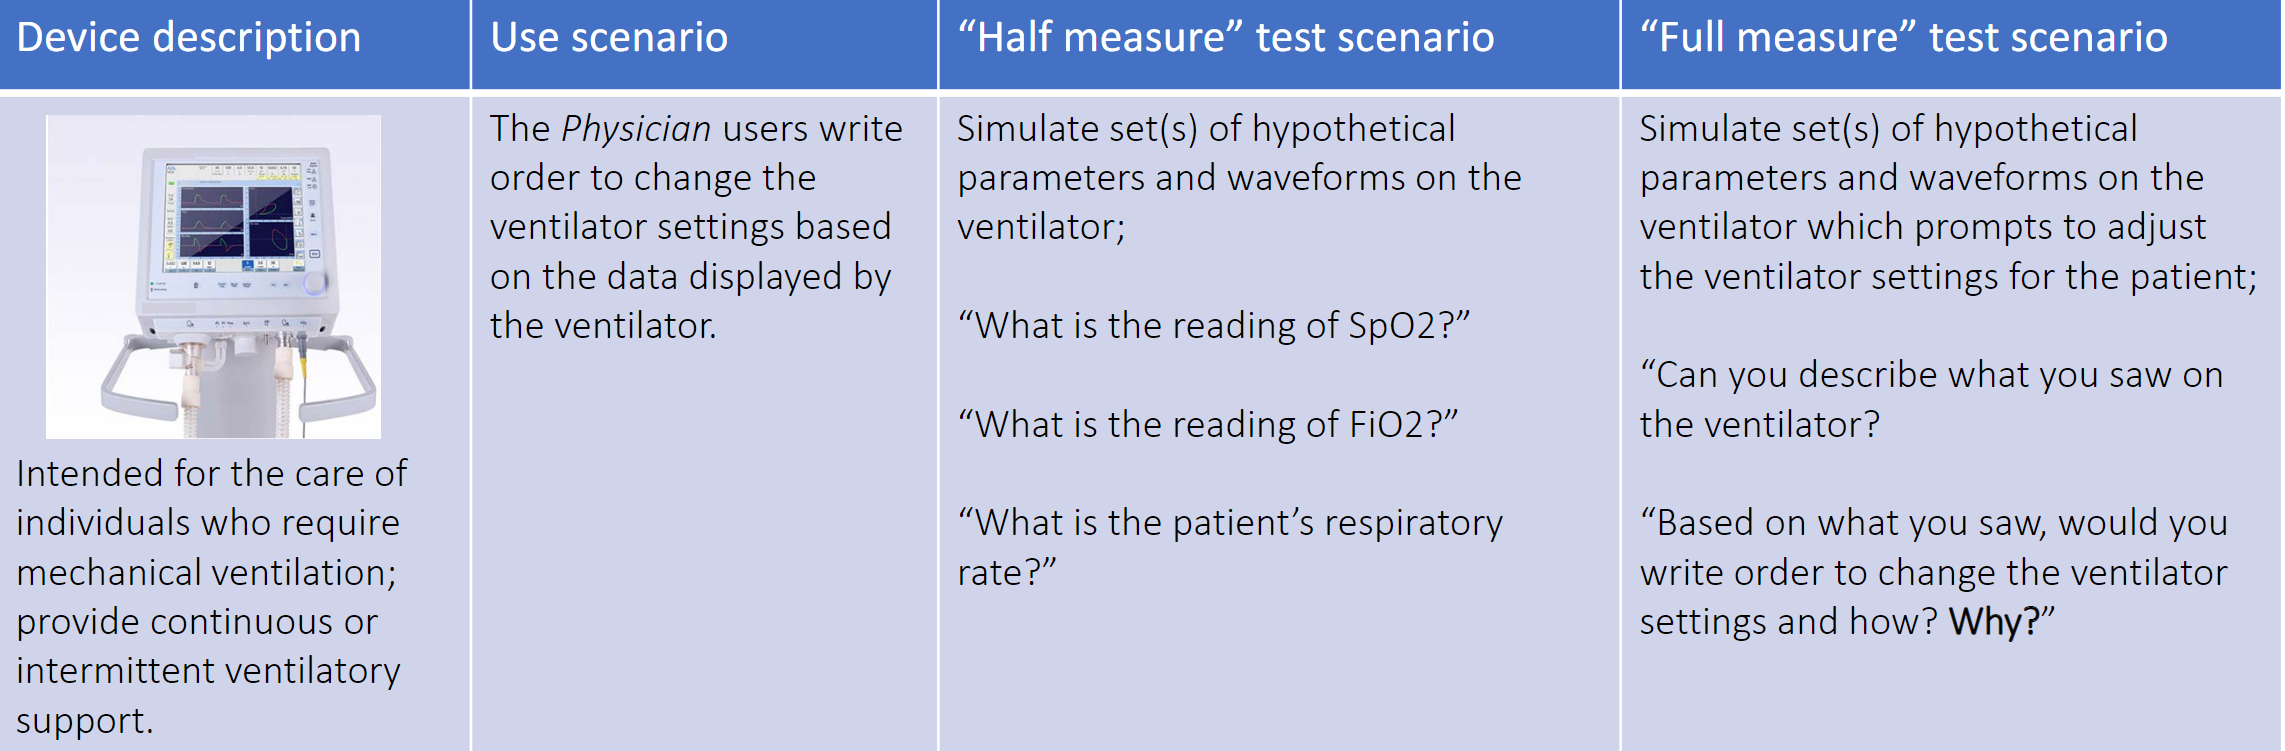 (Table credit: Dr. Feng's presentation at the HFES Healthcare Symposium slide 14)